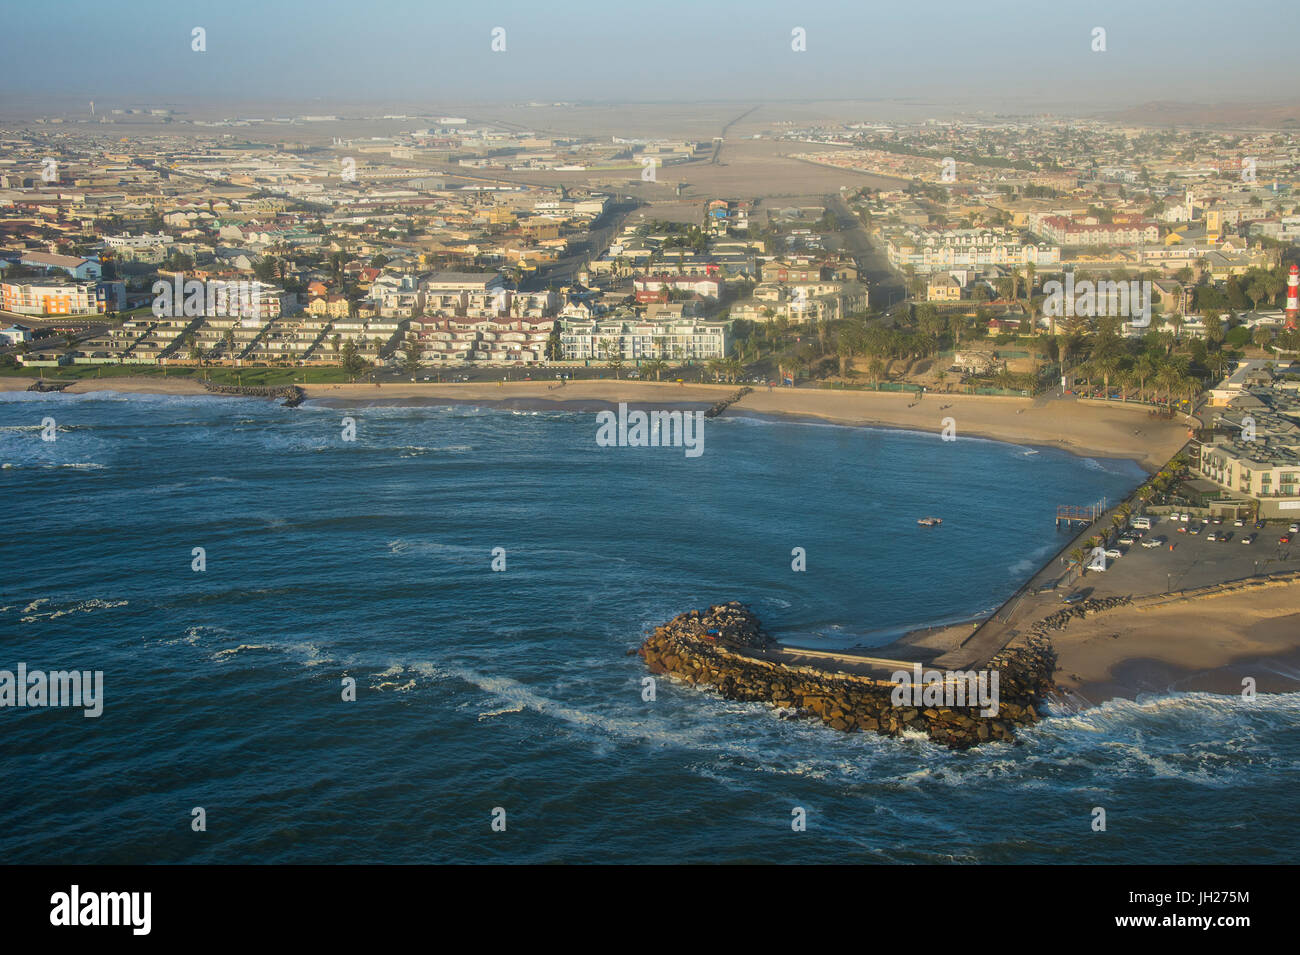 Aerial of Swakopmund, Namibia, Africa Stock Photo